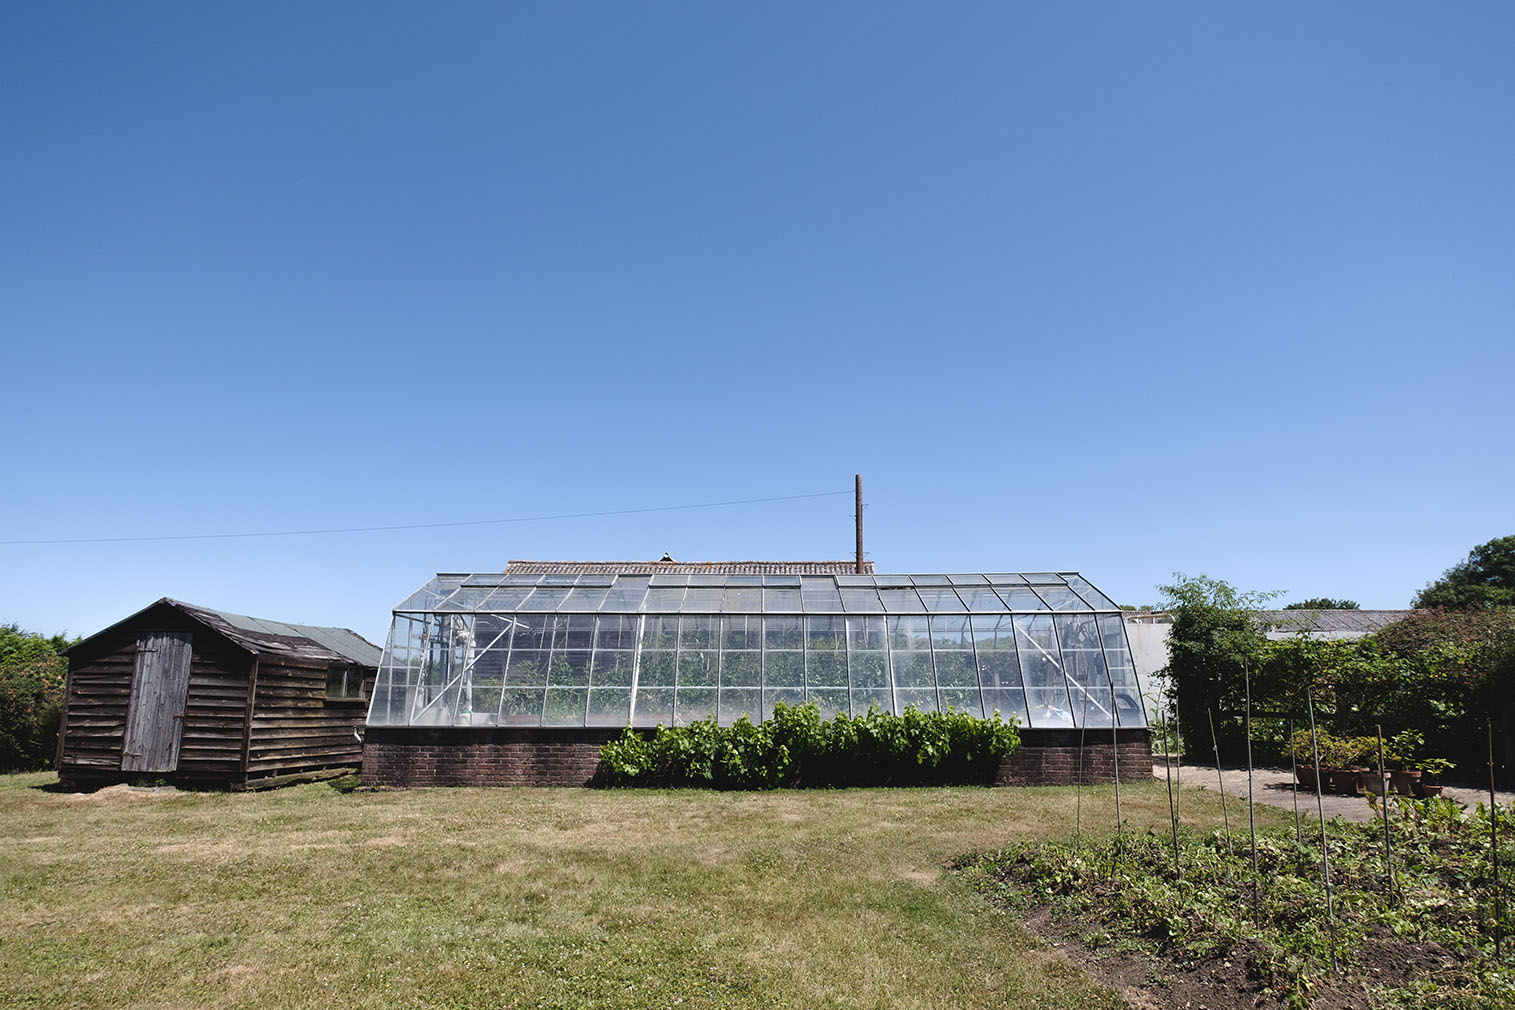 Hertfordshire home with a studio and unconverted barns lists for £1.975m